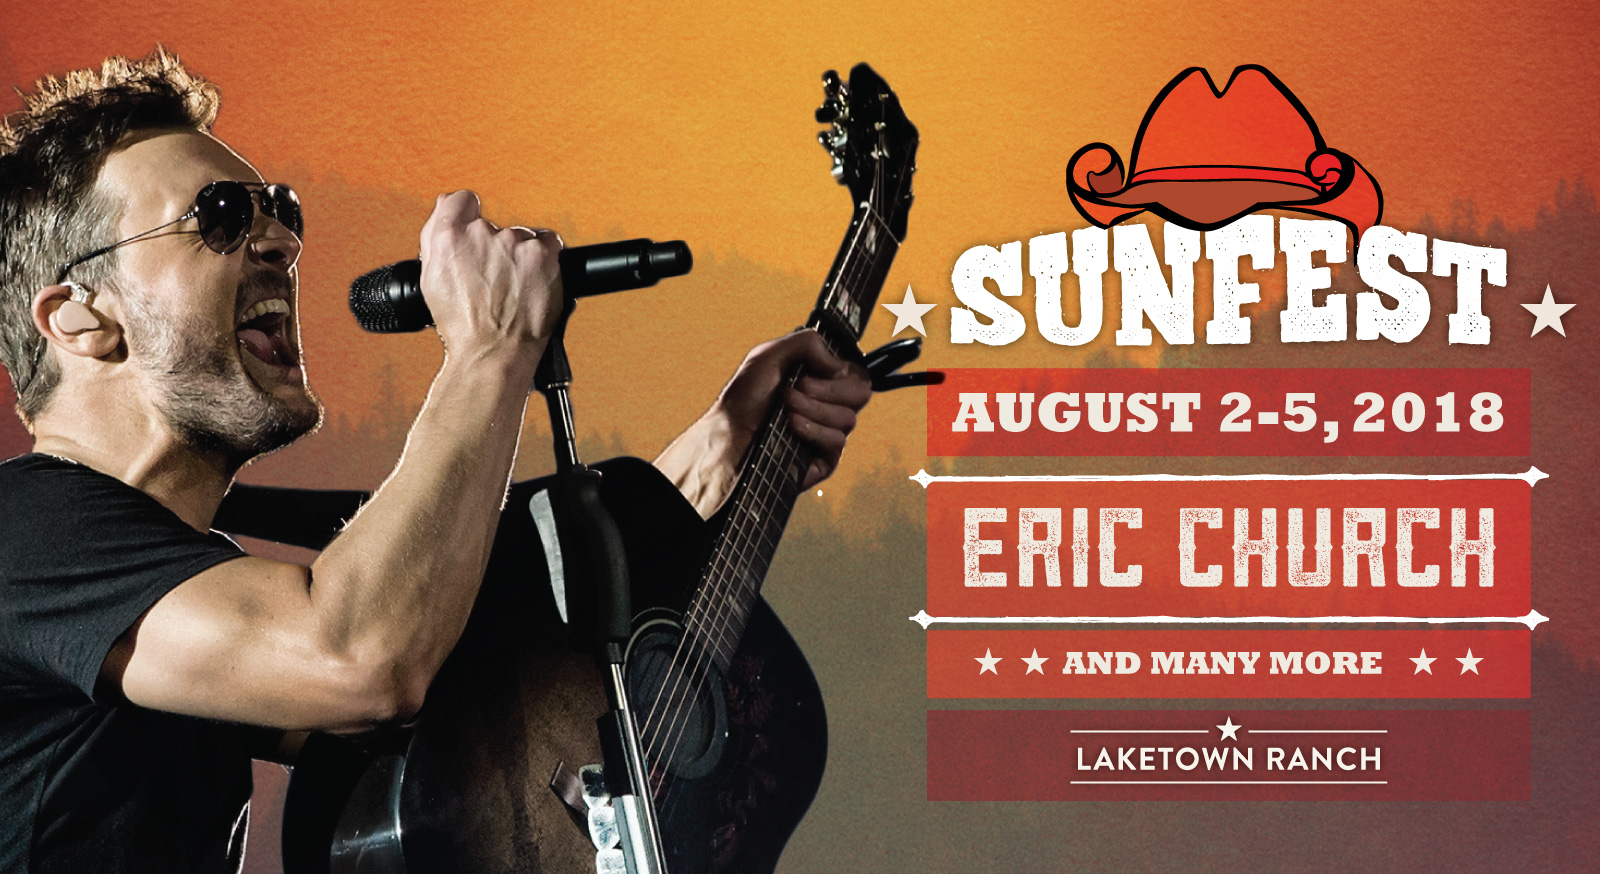 Tickets | Sunfest Country Music Festival